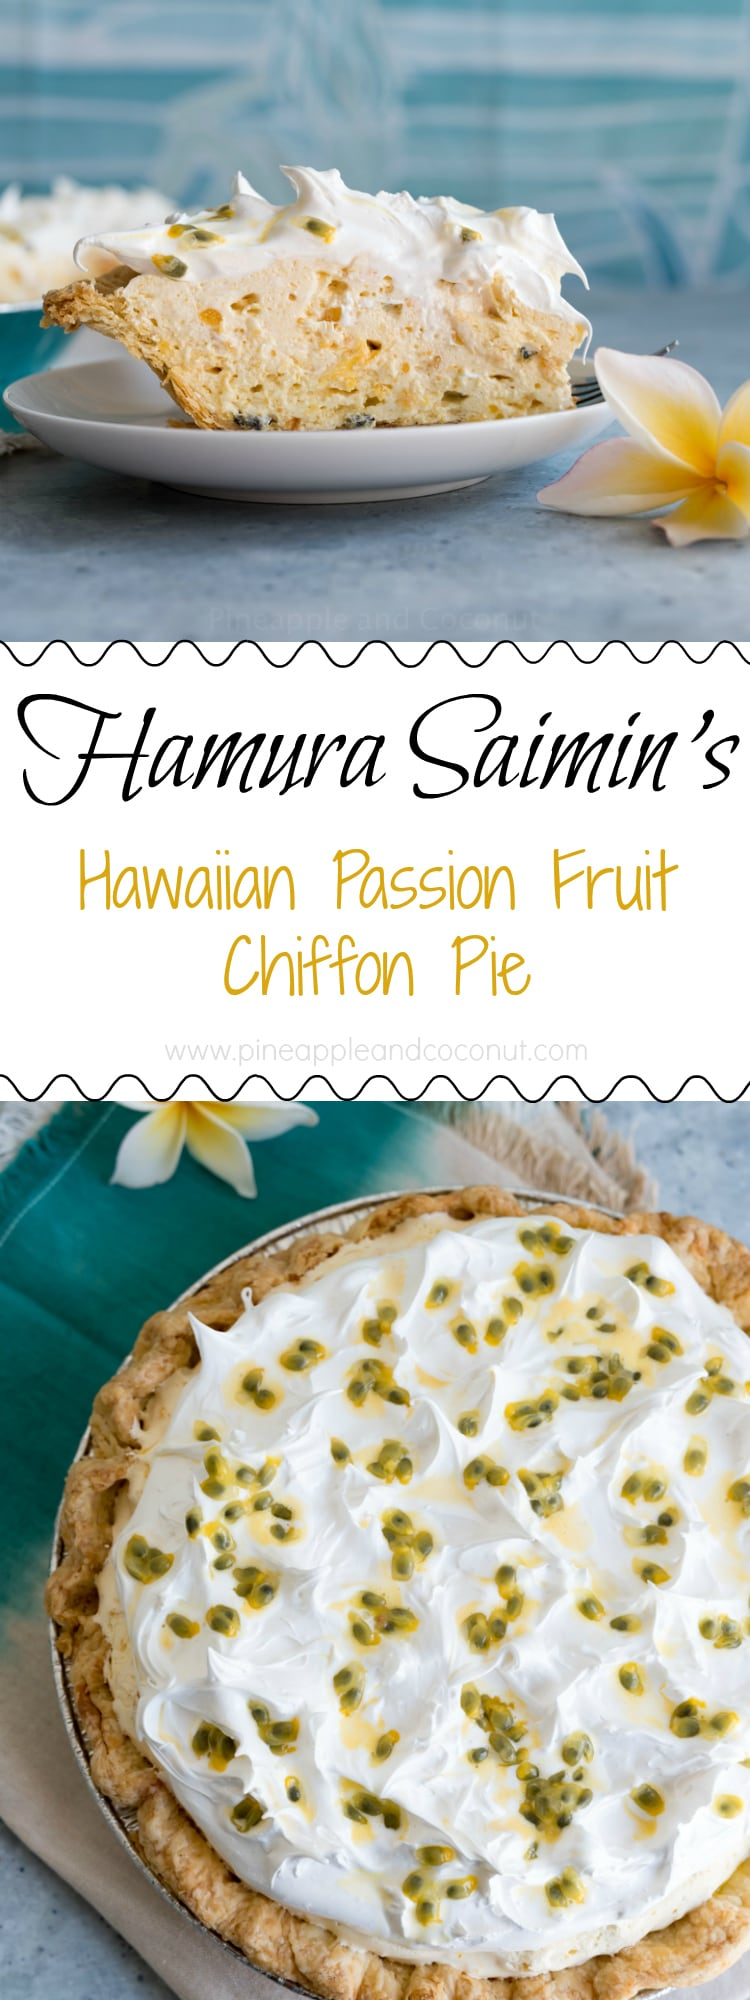 Hawaiian Passion Fruit Chiffon Pie www.pineappleandcoconut.com